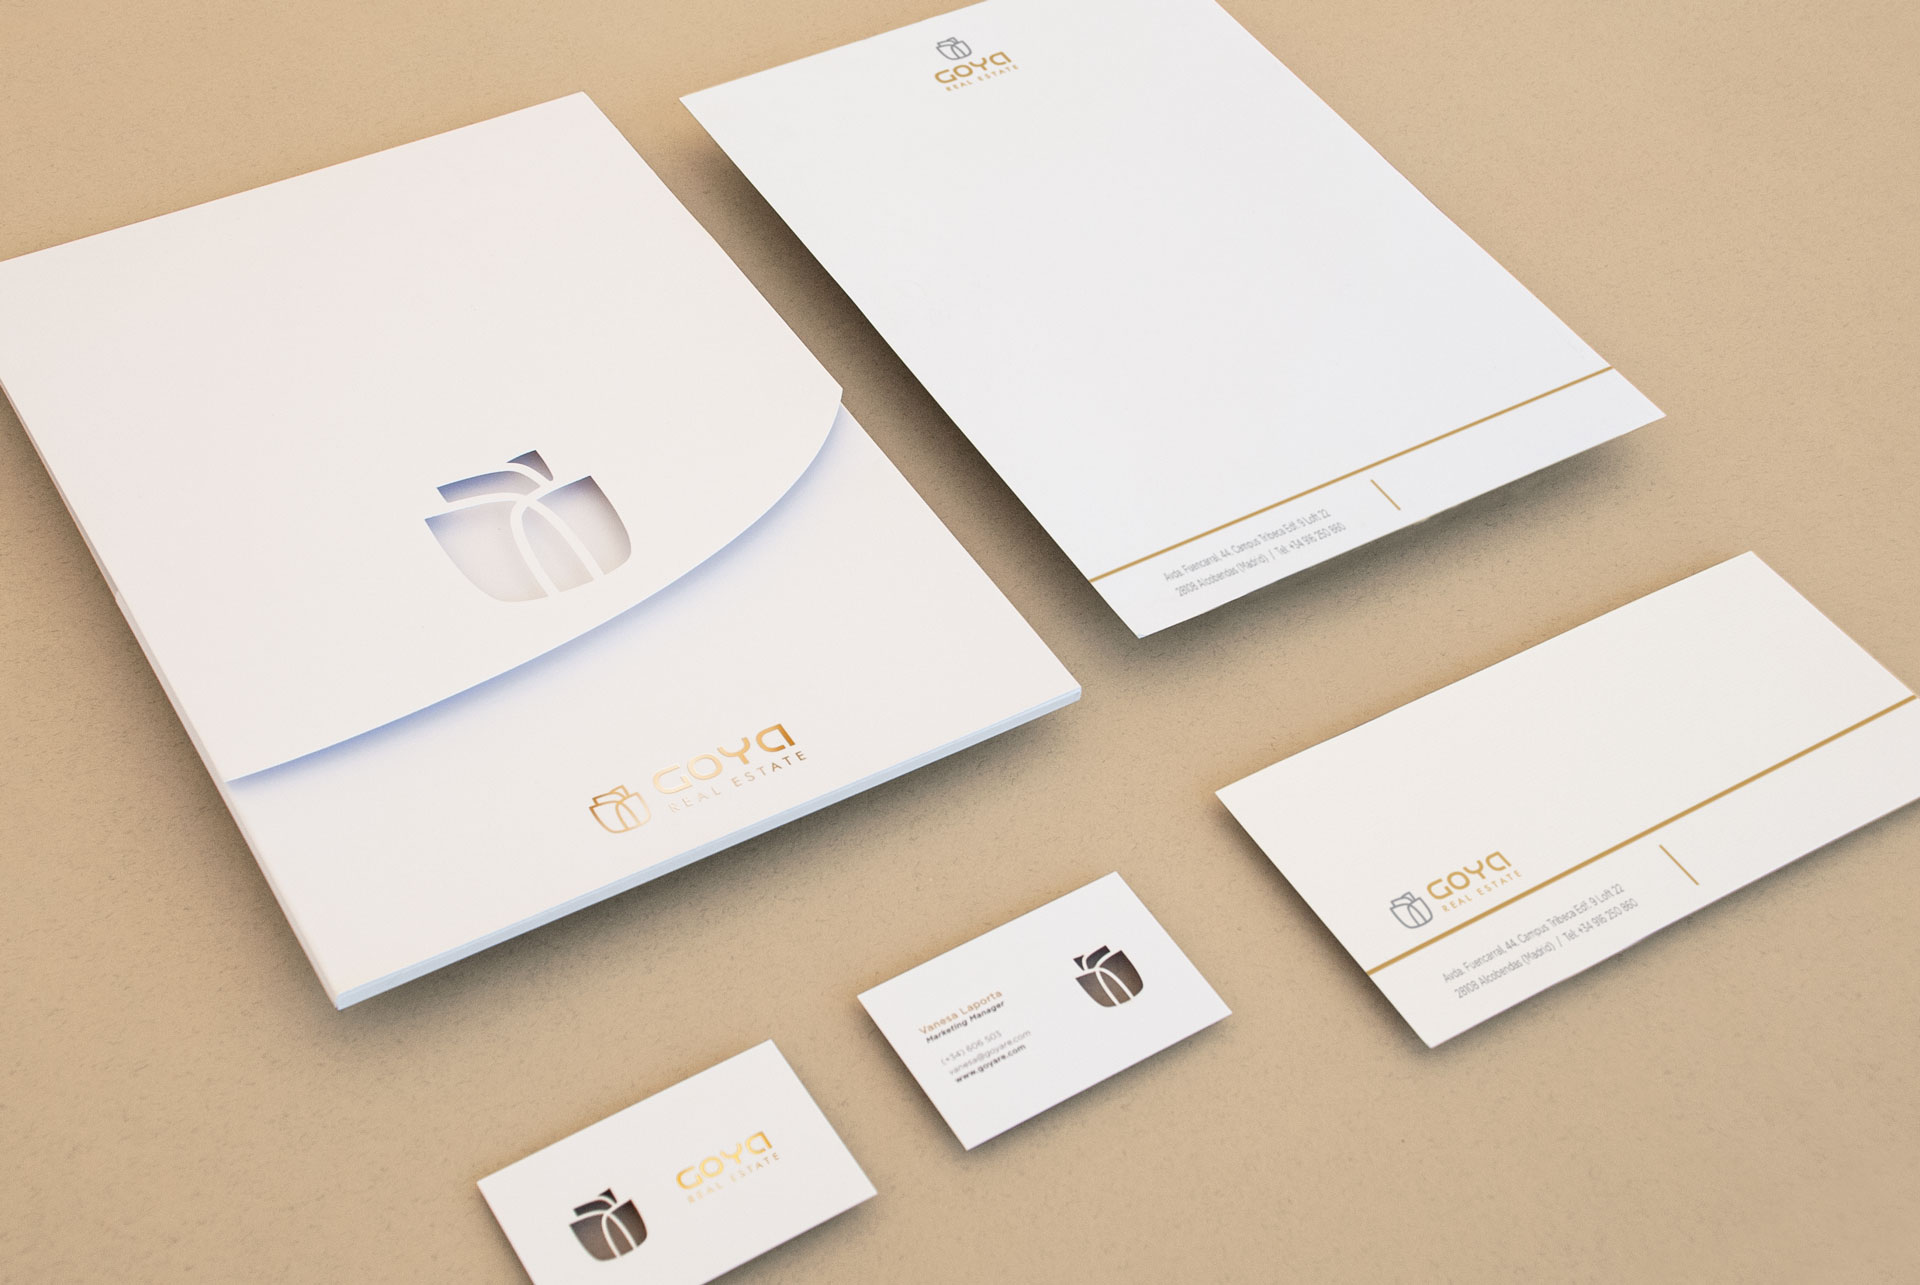 proyecto giset design goya real estate logo y identidad corporativa